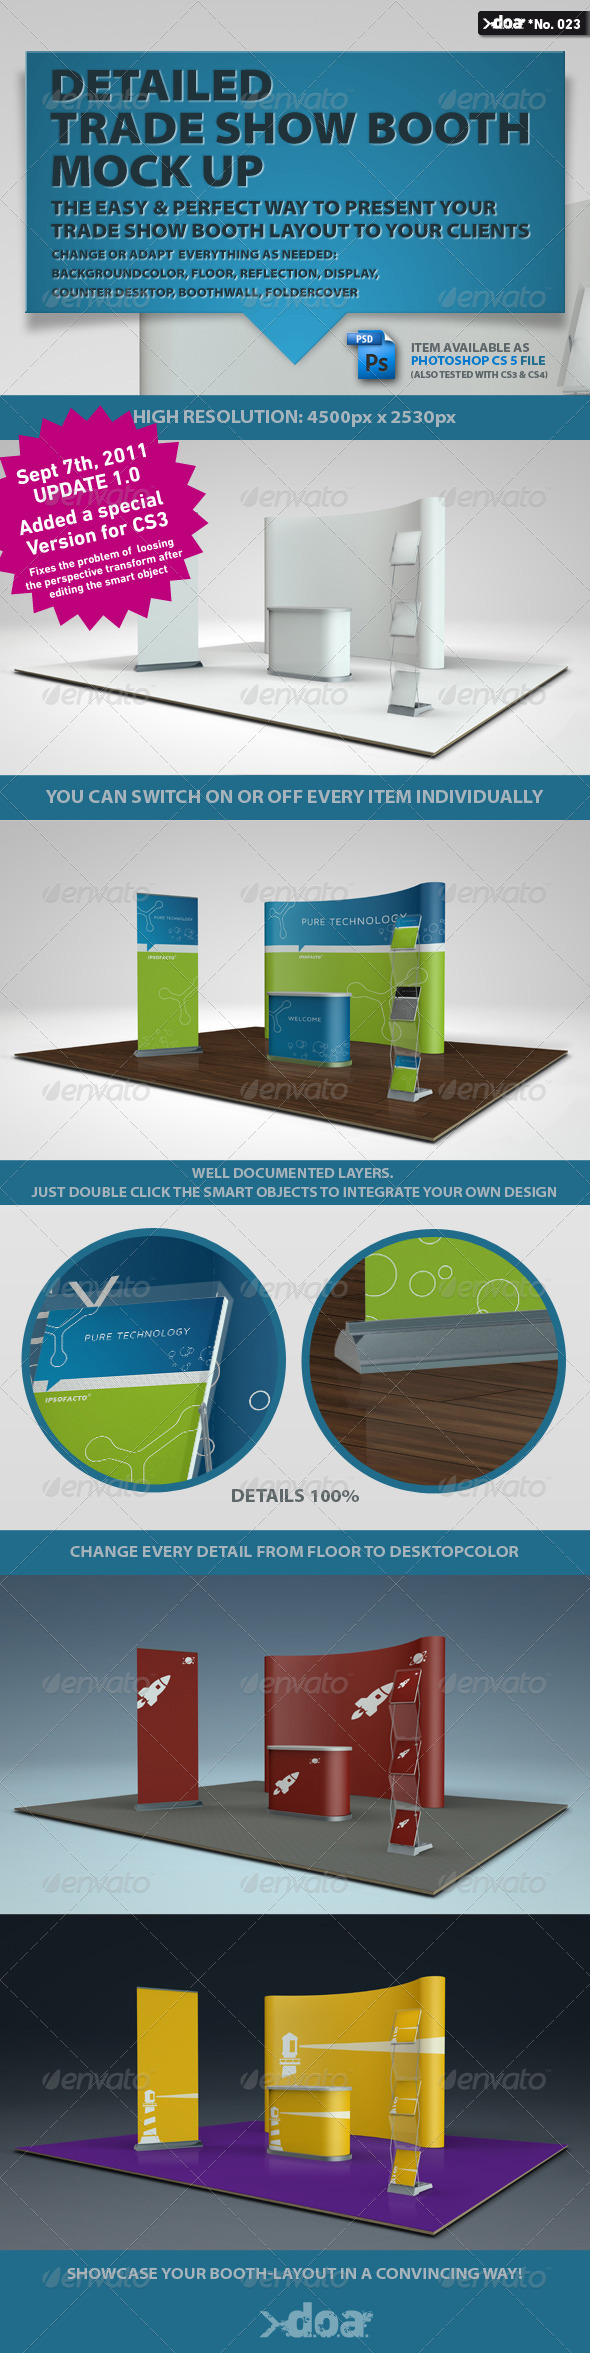 Trade Show Boot Mock-up GraphicRiver - Graphics -  Product Mock-Ups 477808